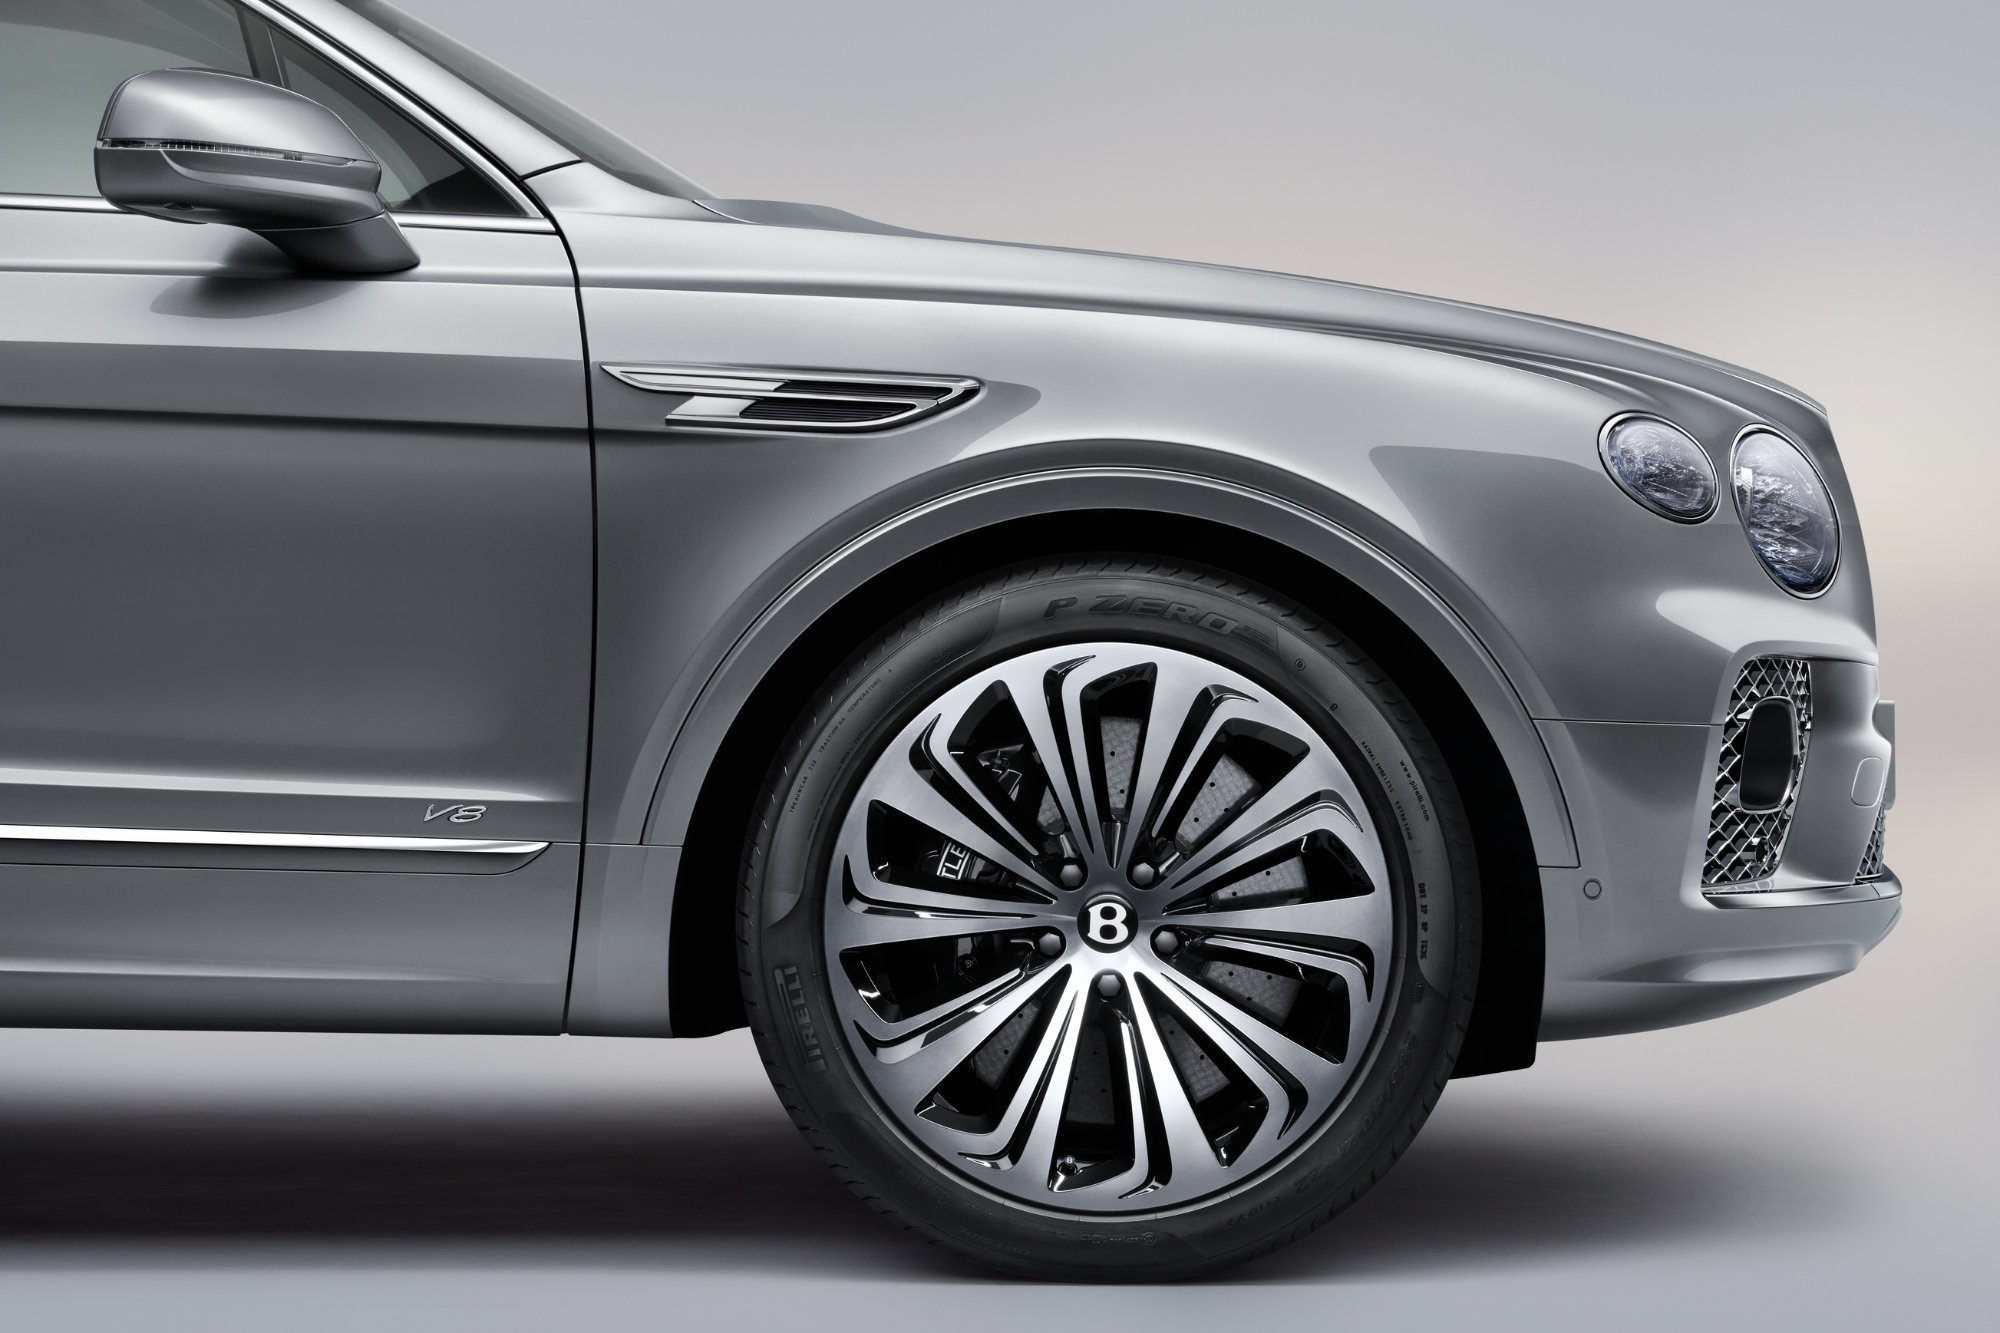 jpeg-Imagery_Bentayga V8_21MY_New Bentayga V8 21MY Studio  Wheel Extension Front Profile Close Up .jpg